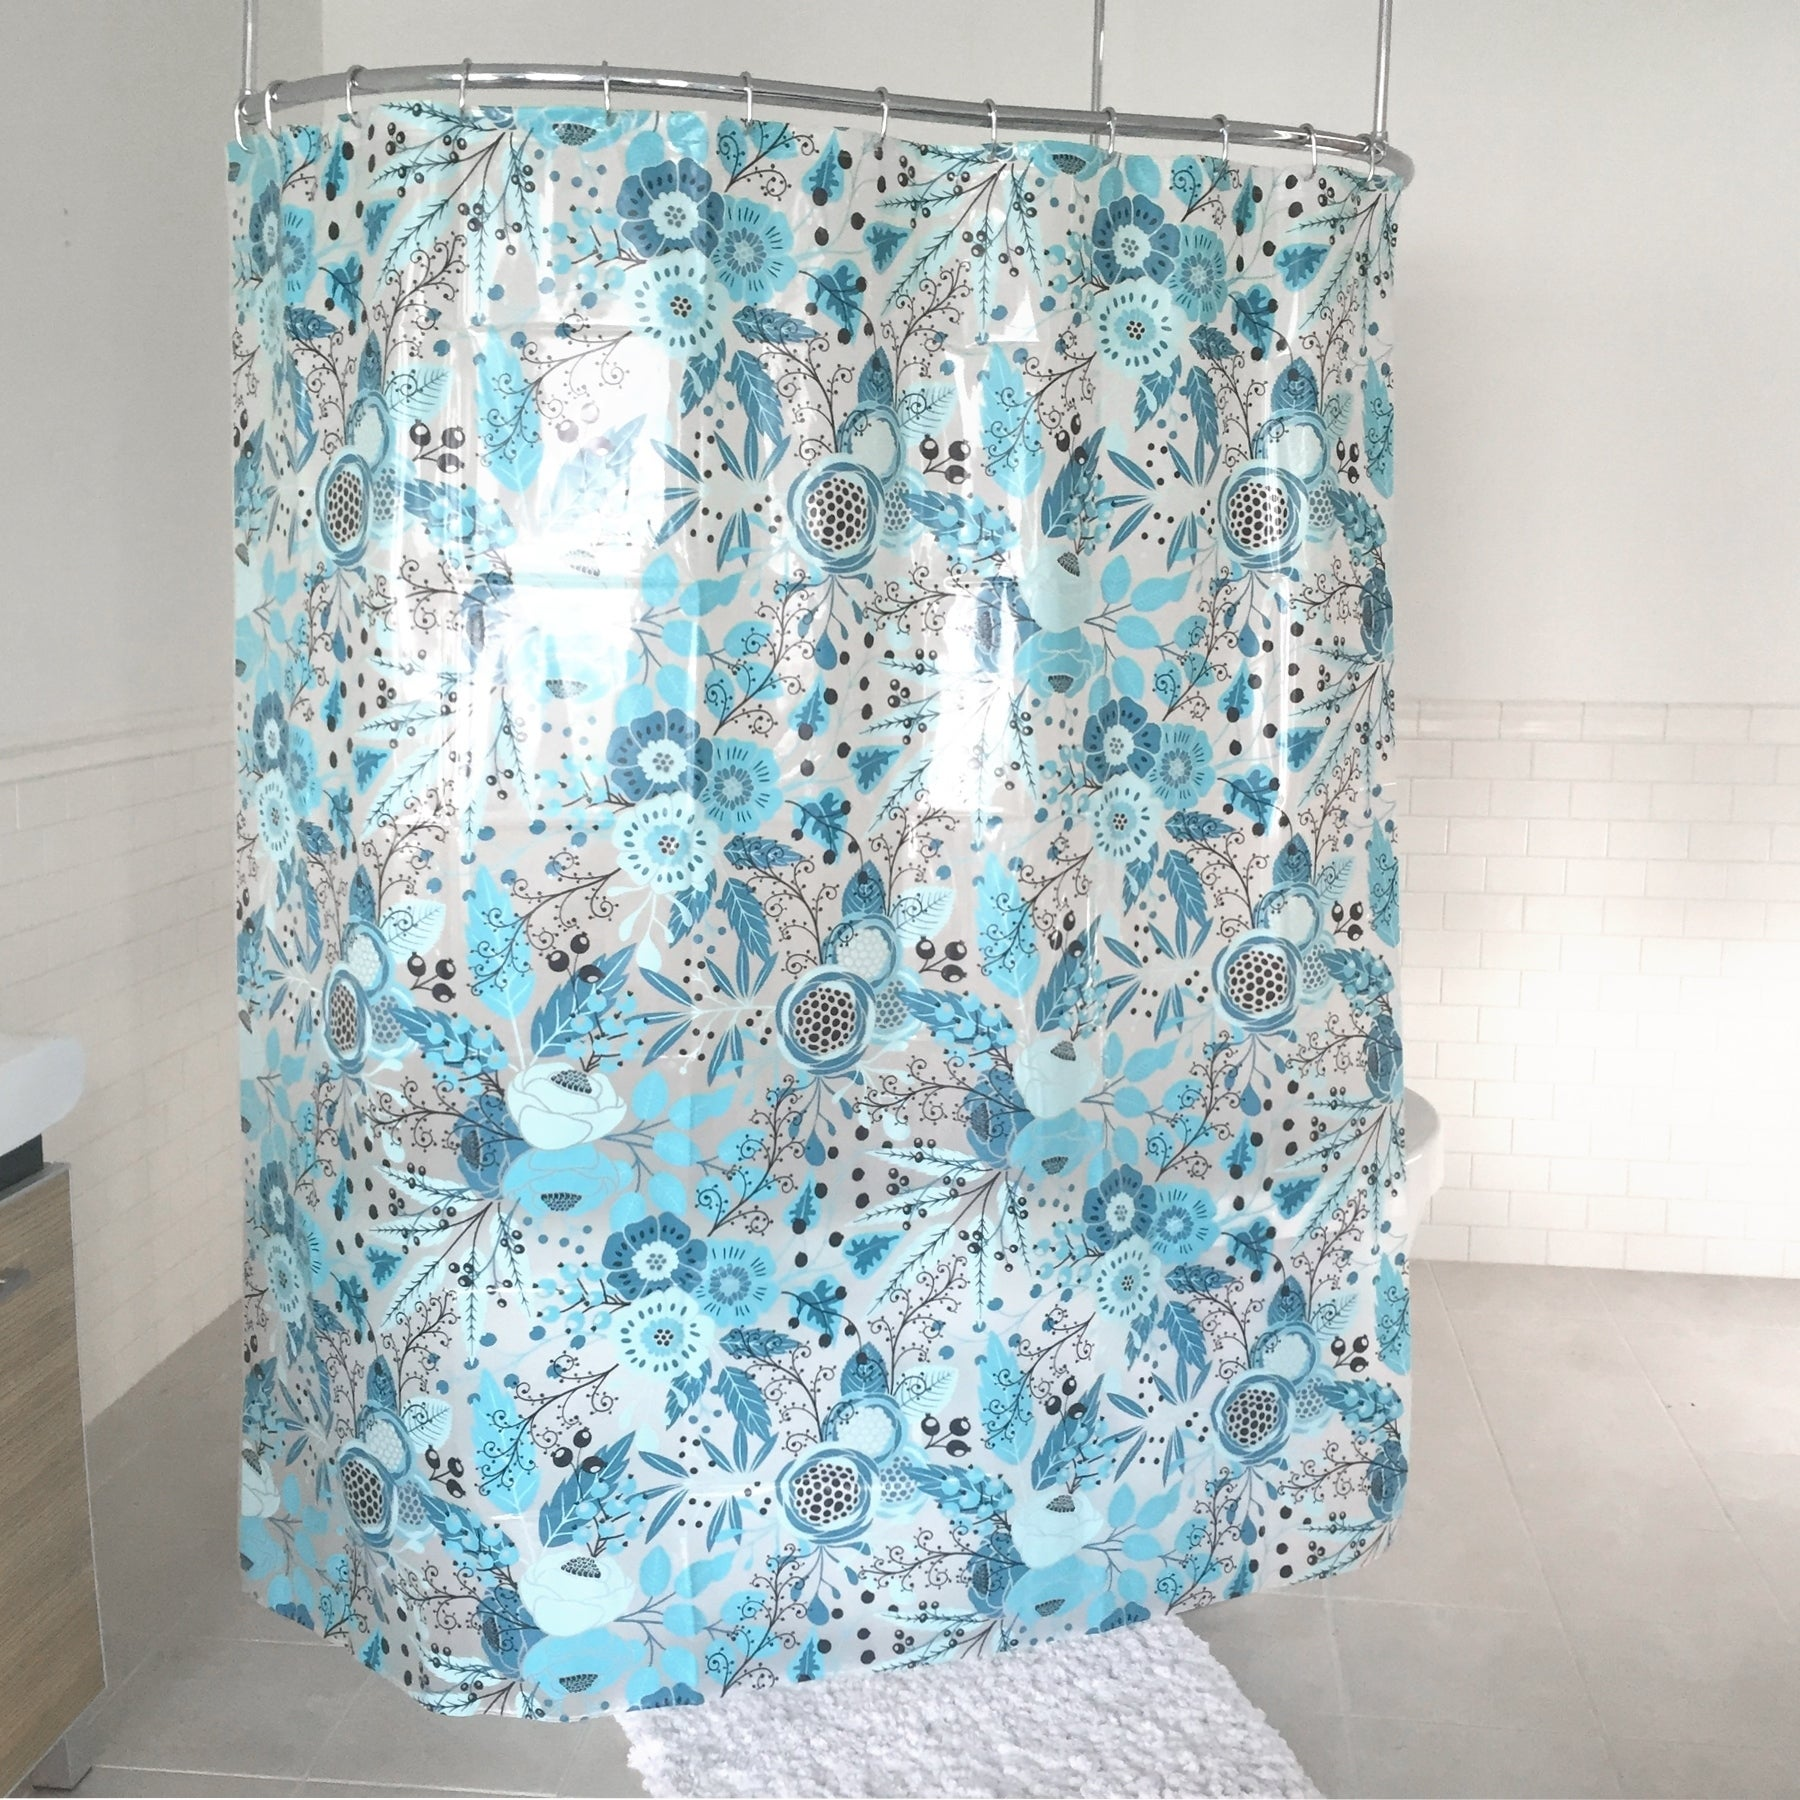 Details About Splash Home Forever PEVA Shower Curtain 72 X 70 Blue